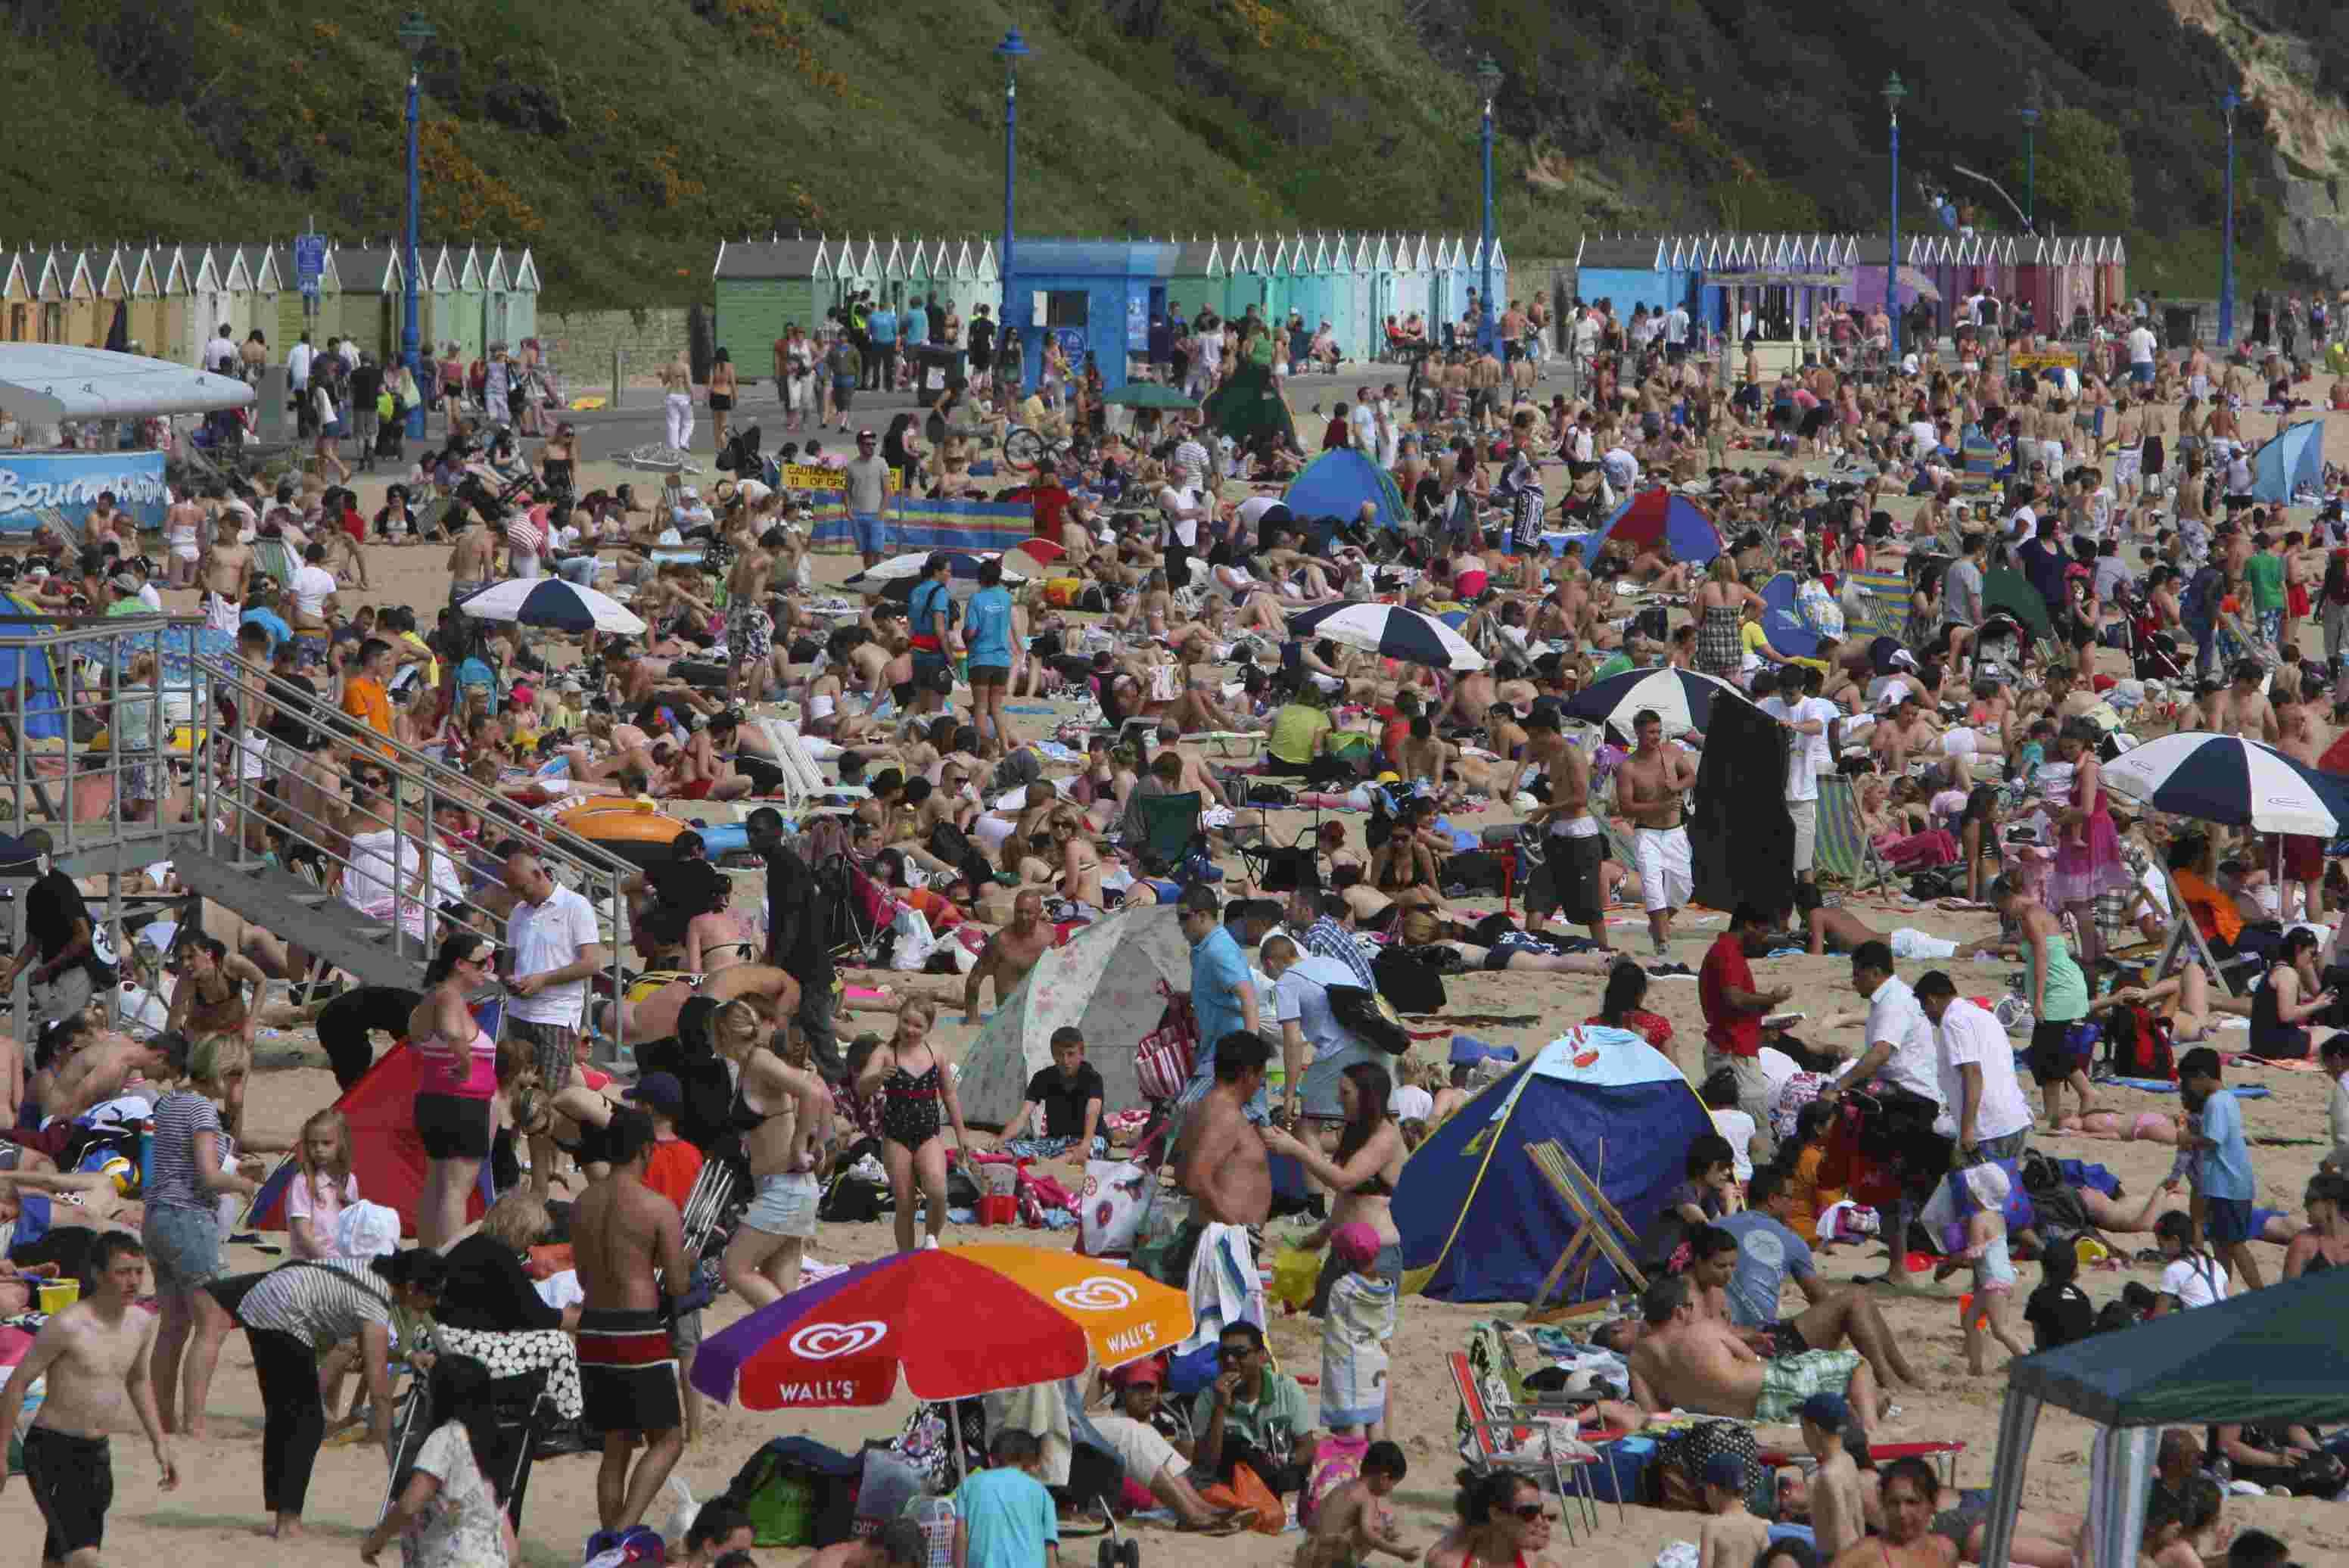 Crowds pack the Bournemouth seafront